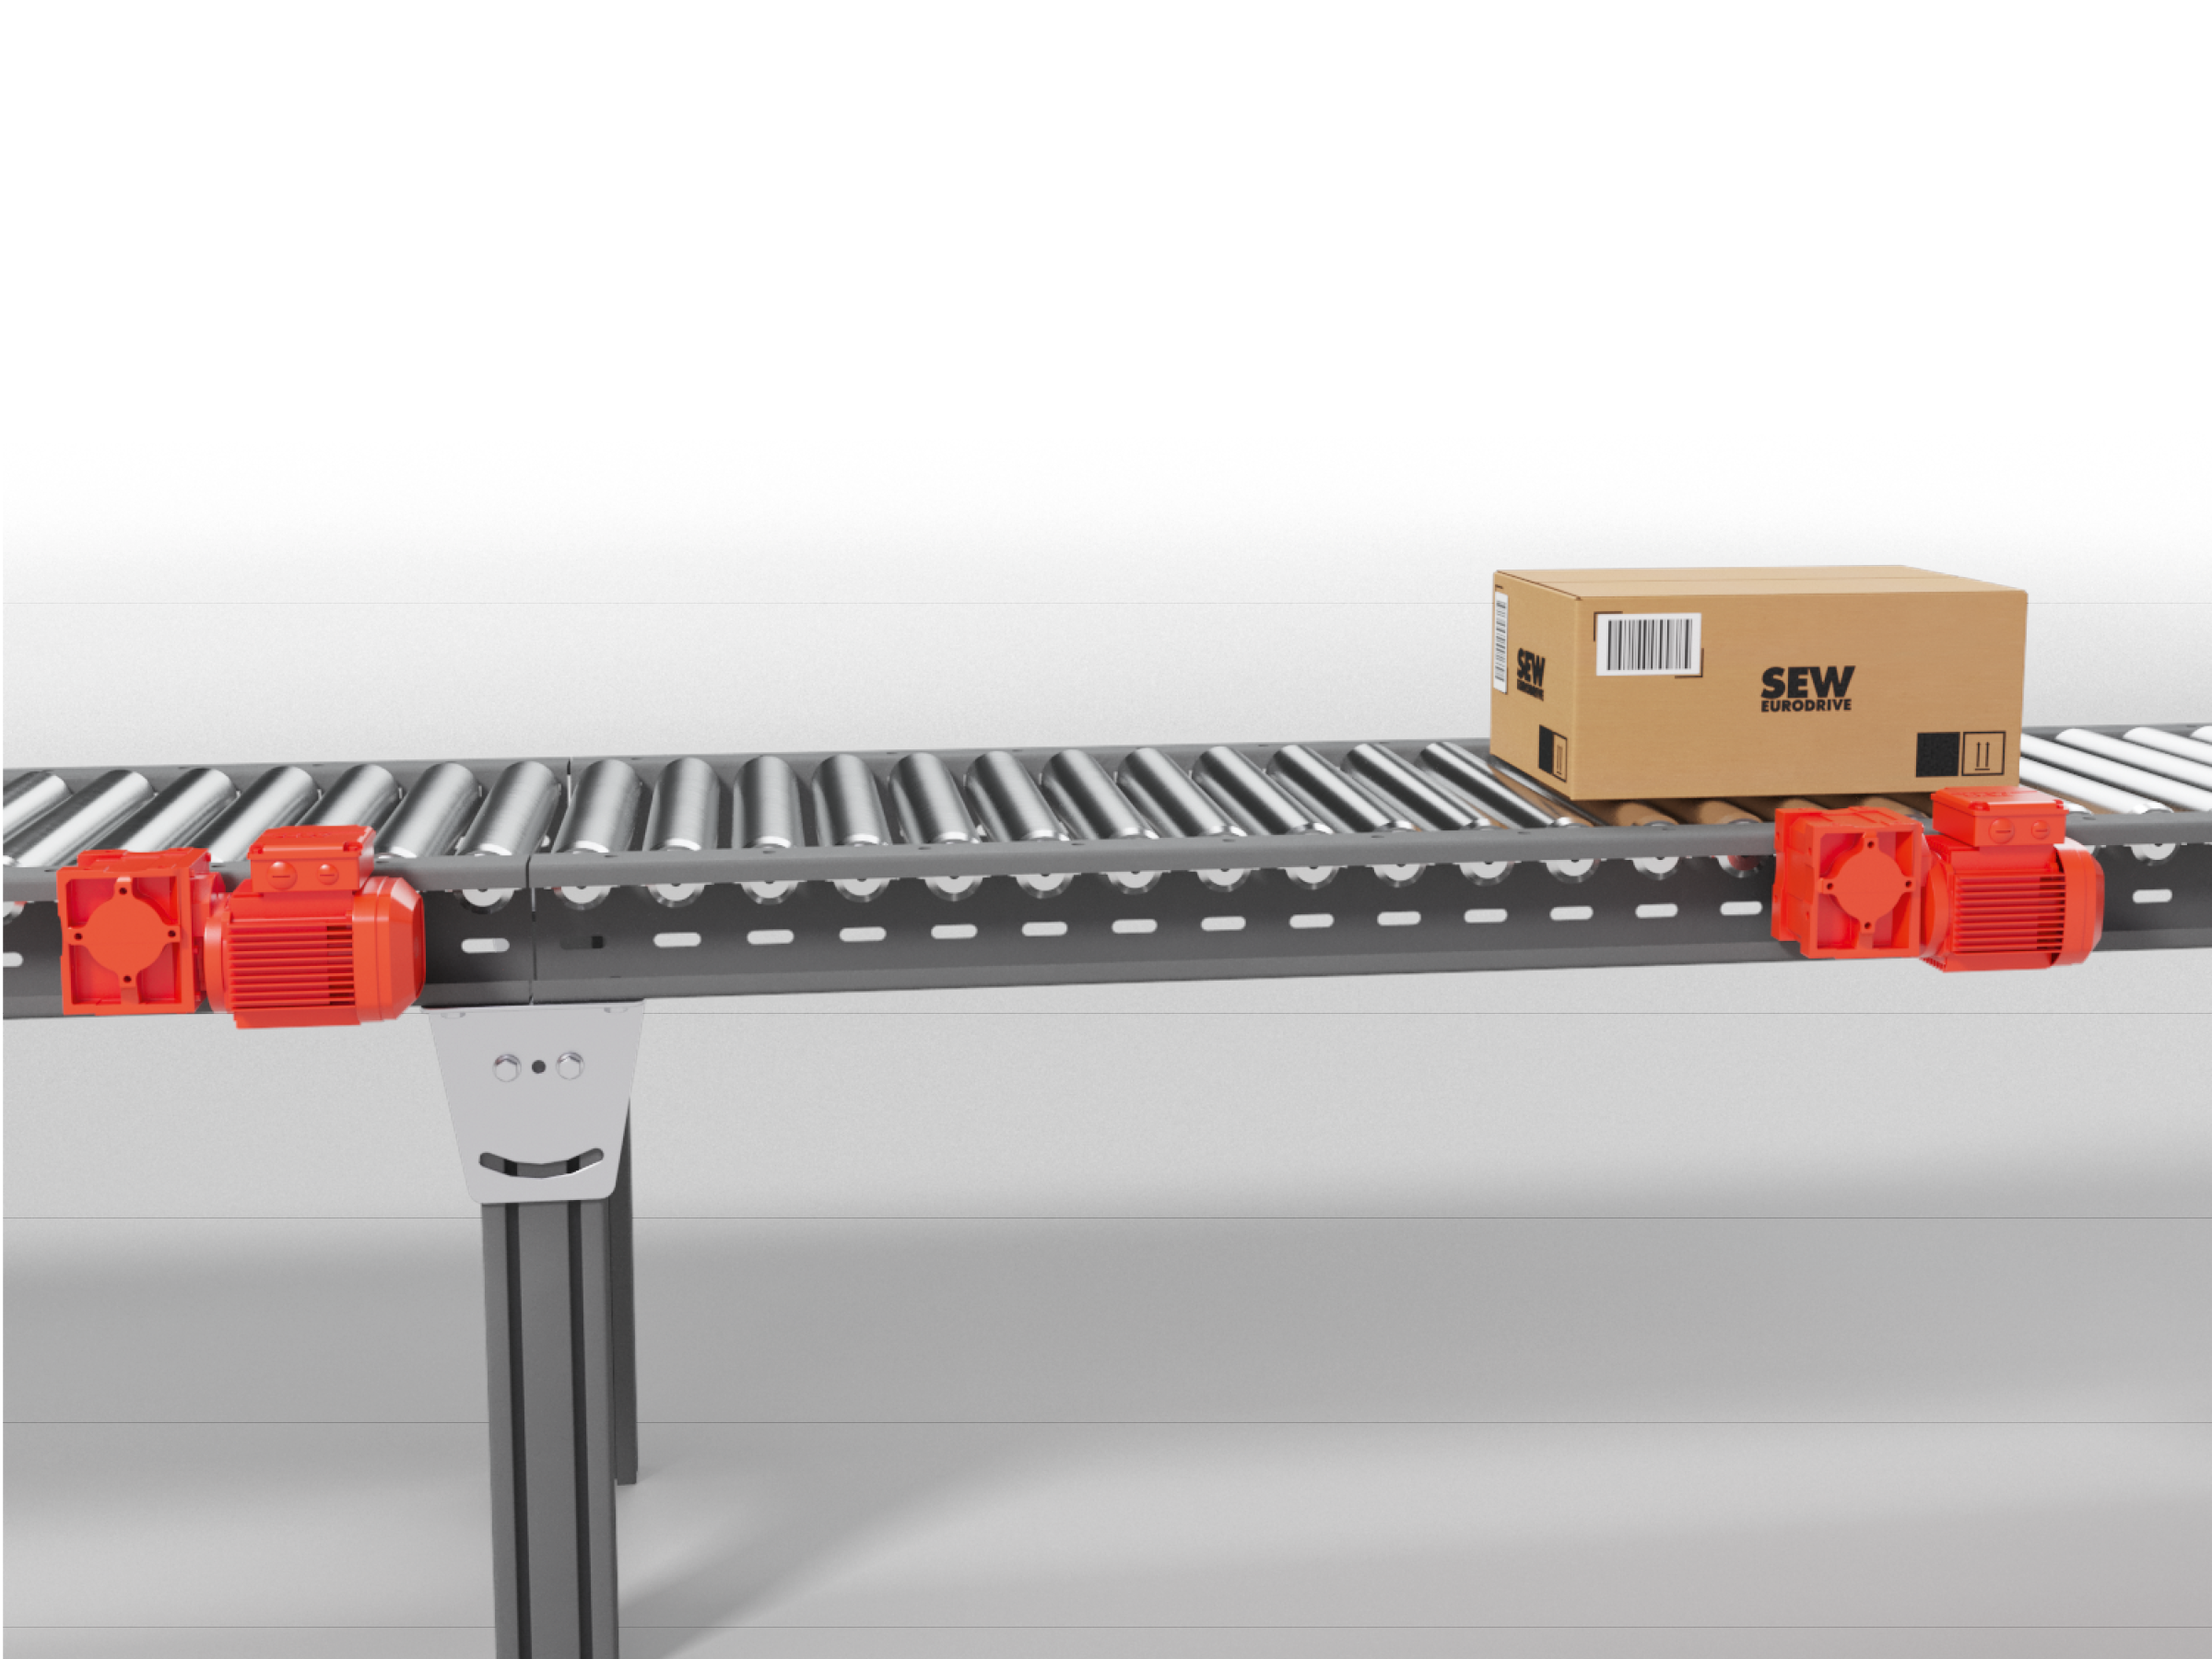 Conveyor belt with red gear units and SEW package